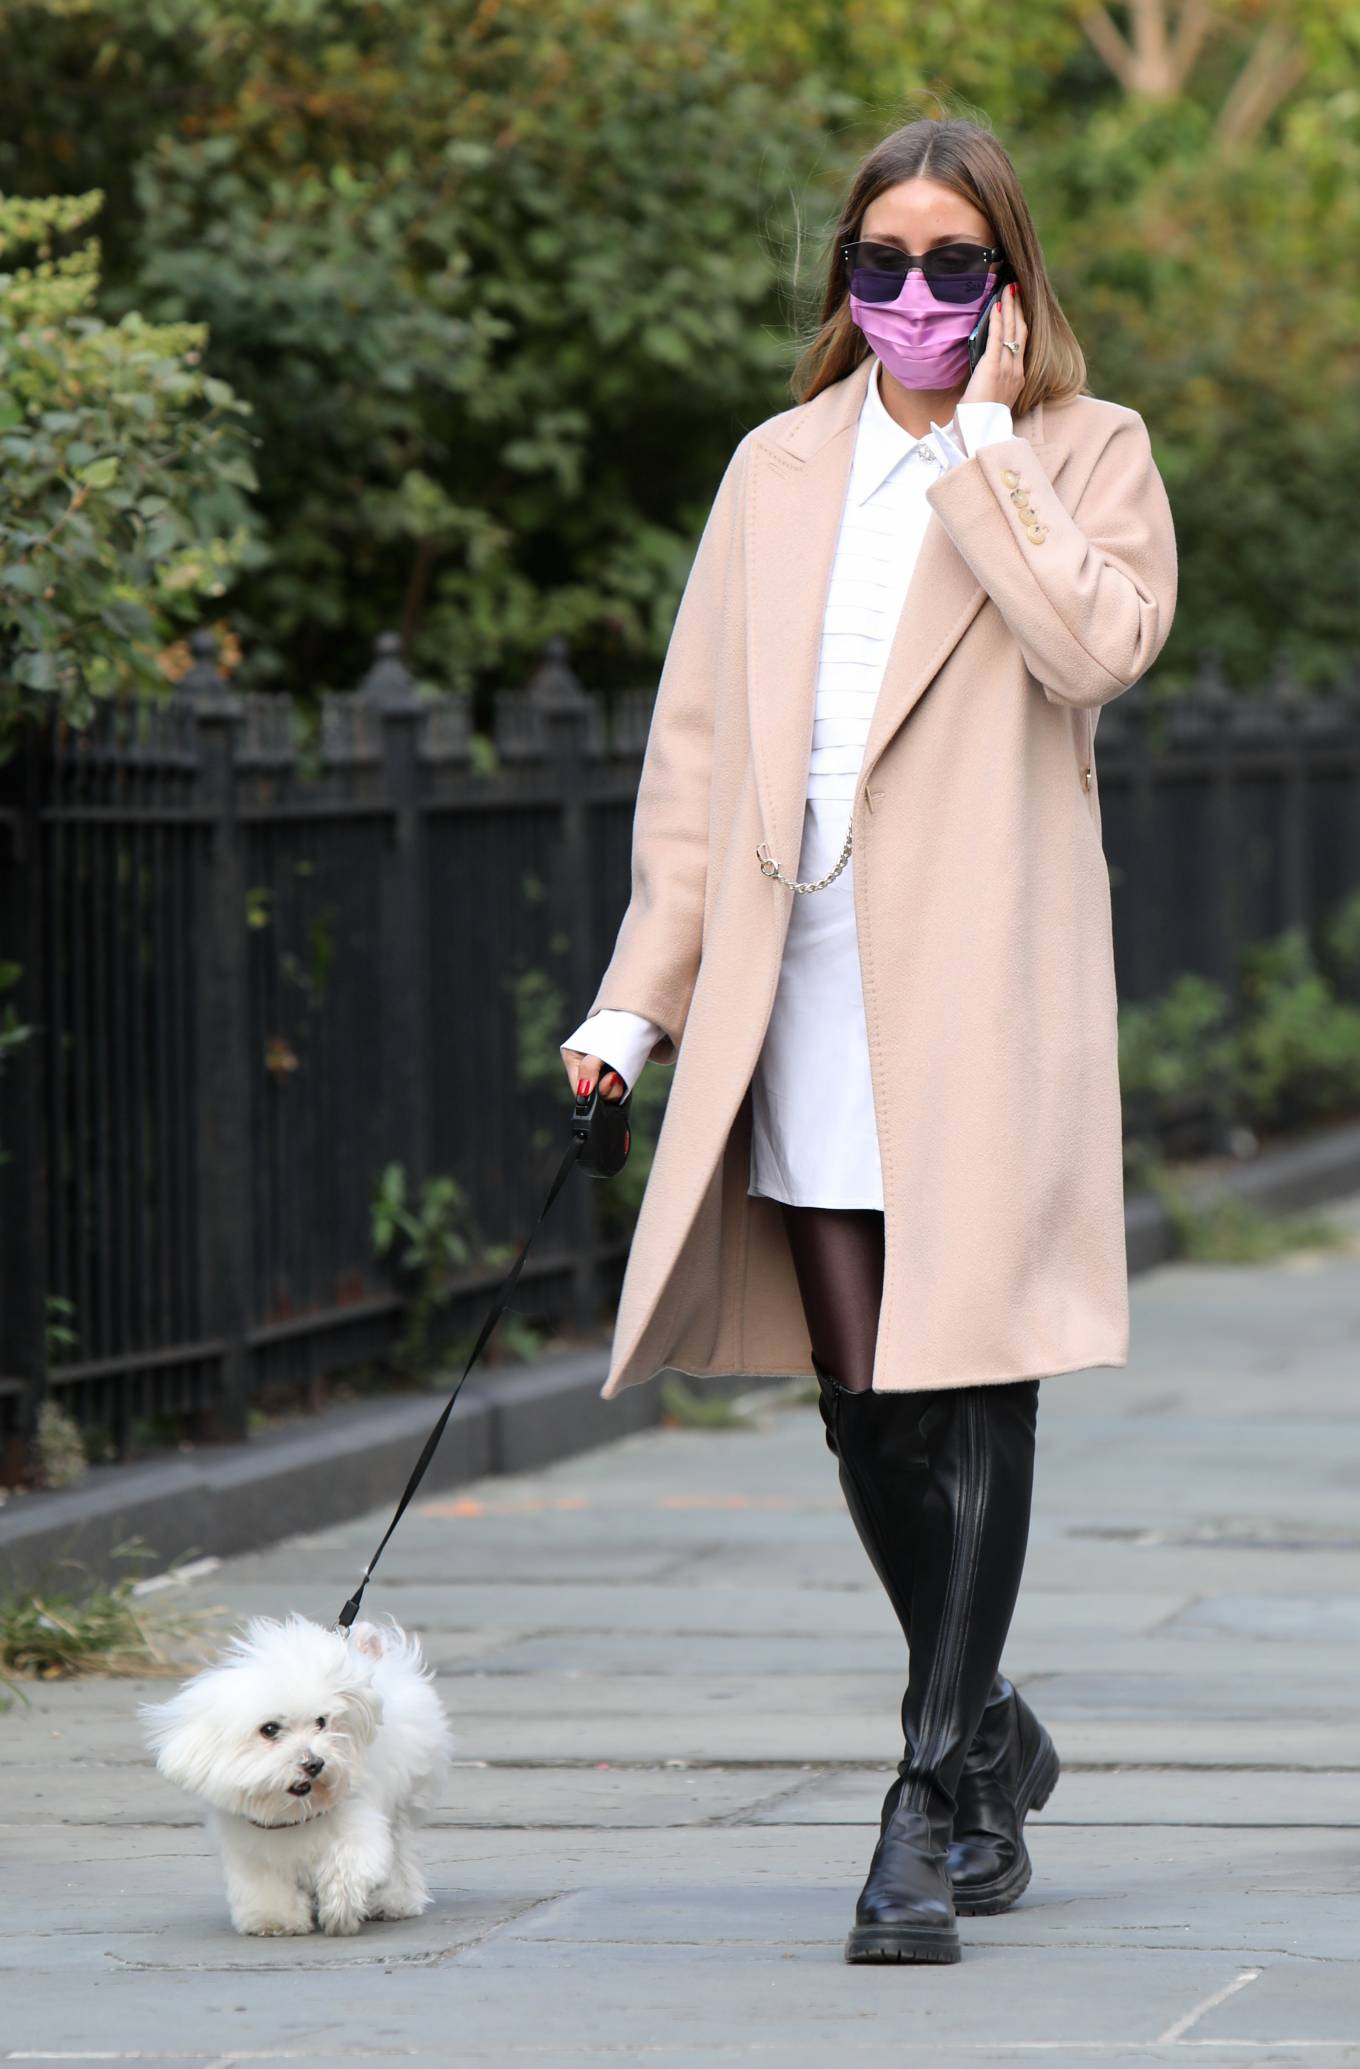 Olivia Palermo 2020 : Olivia Palermo – Wearing a white short dress under a coat while out for a walk in Manhattan-12